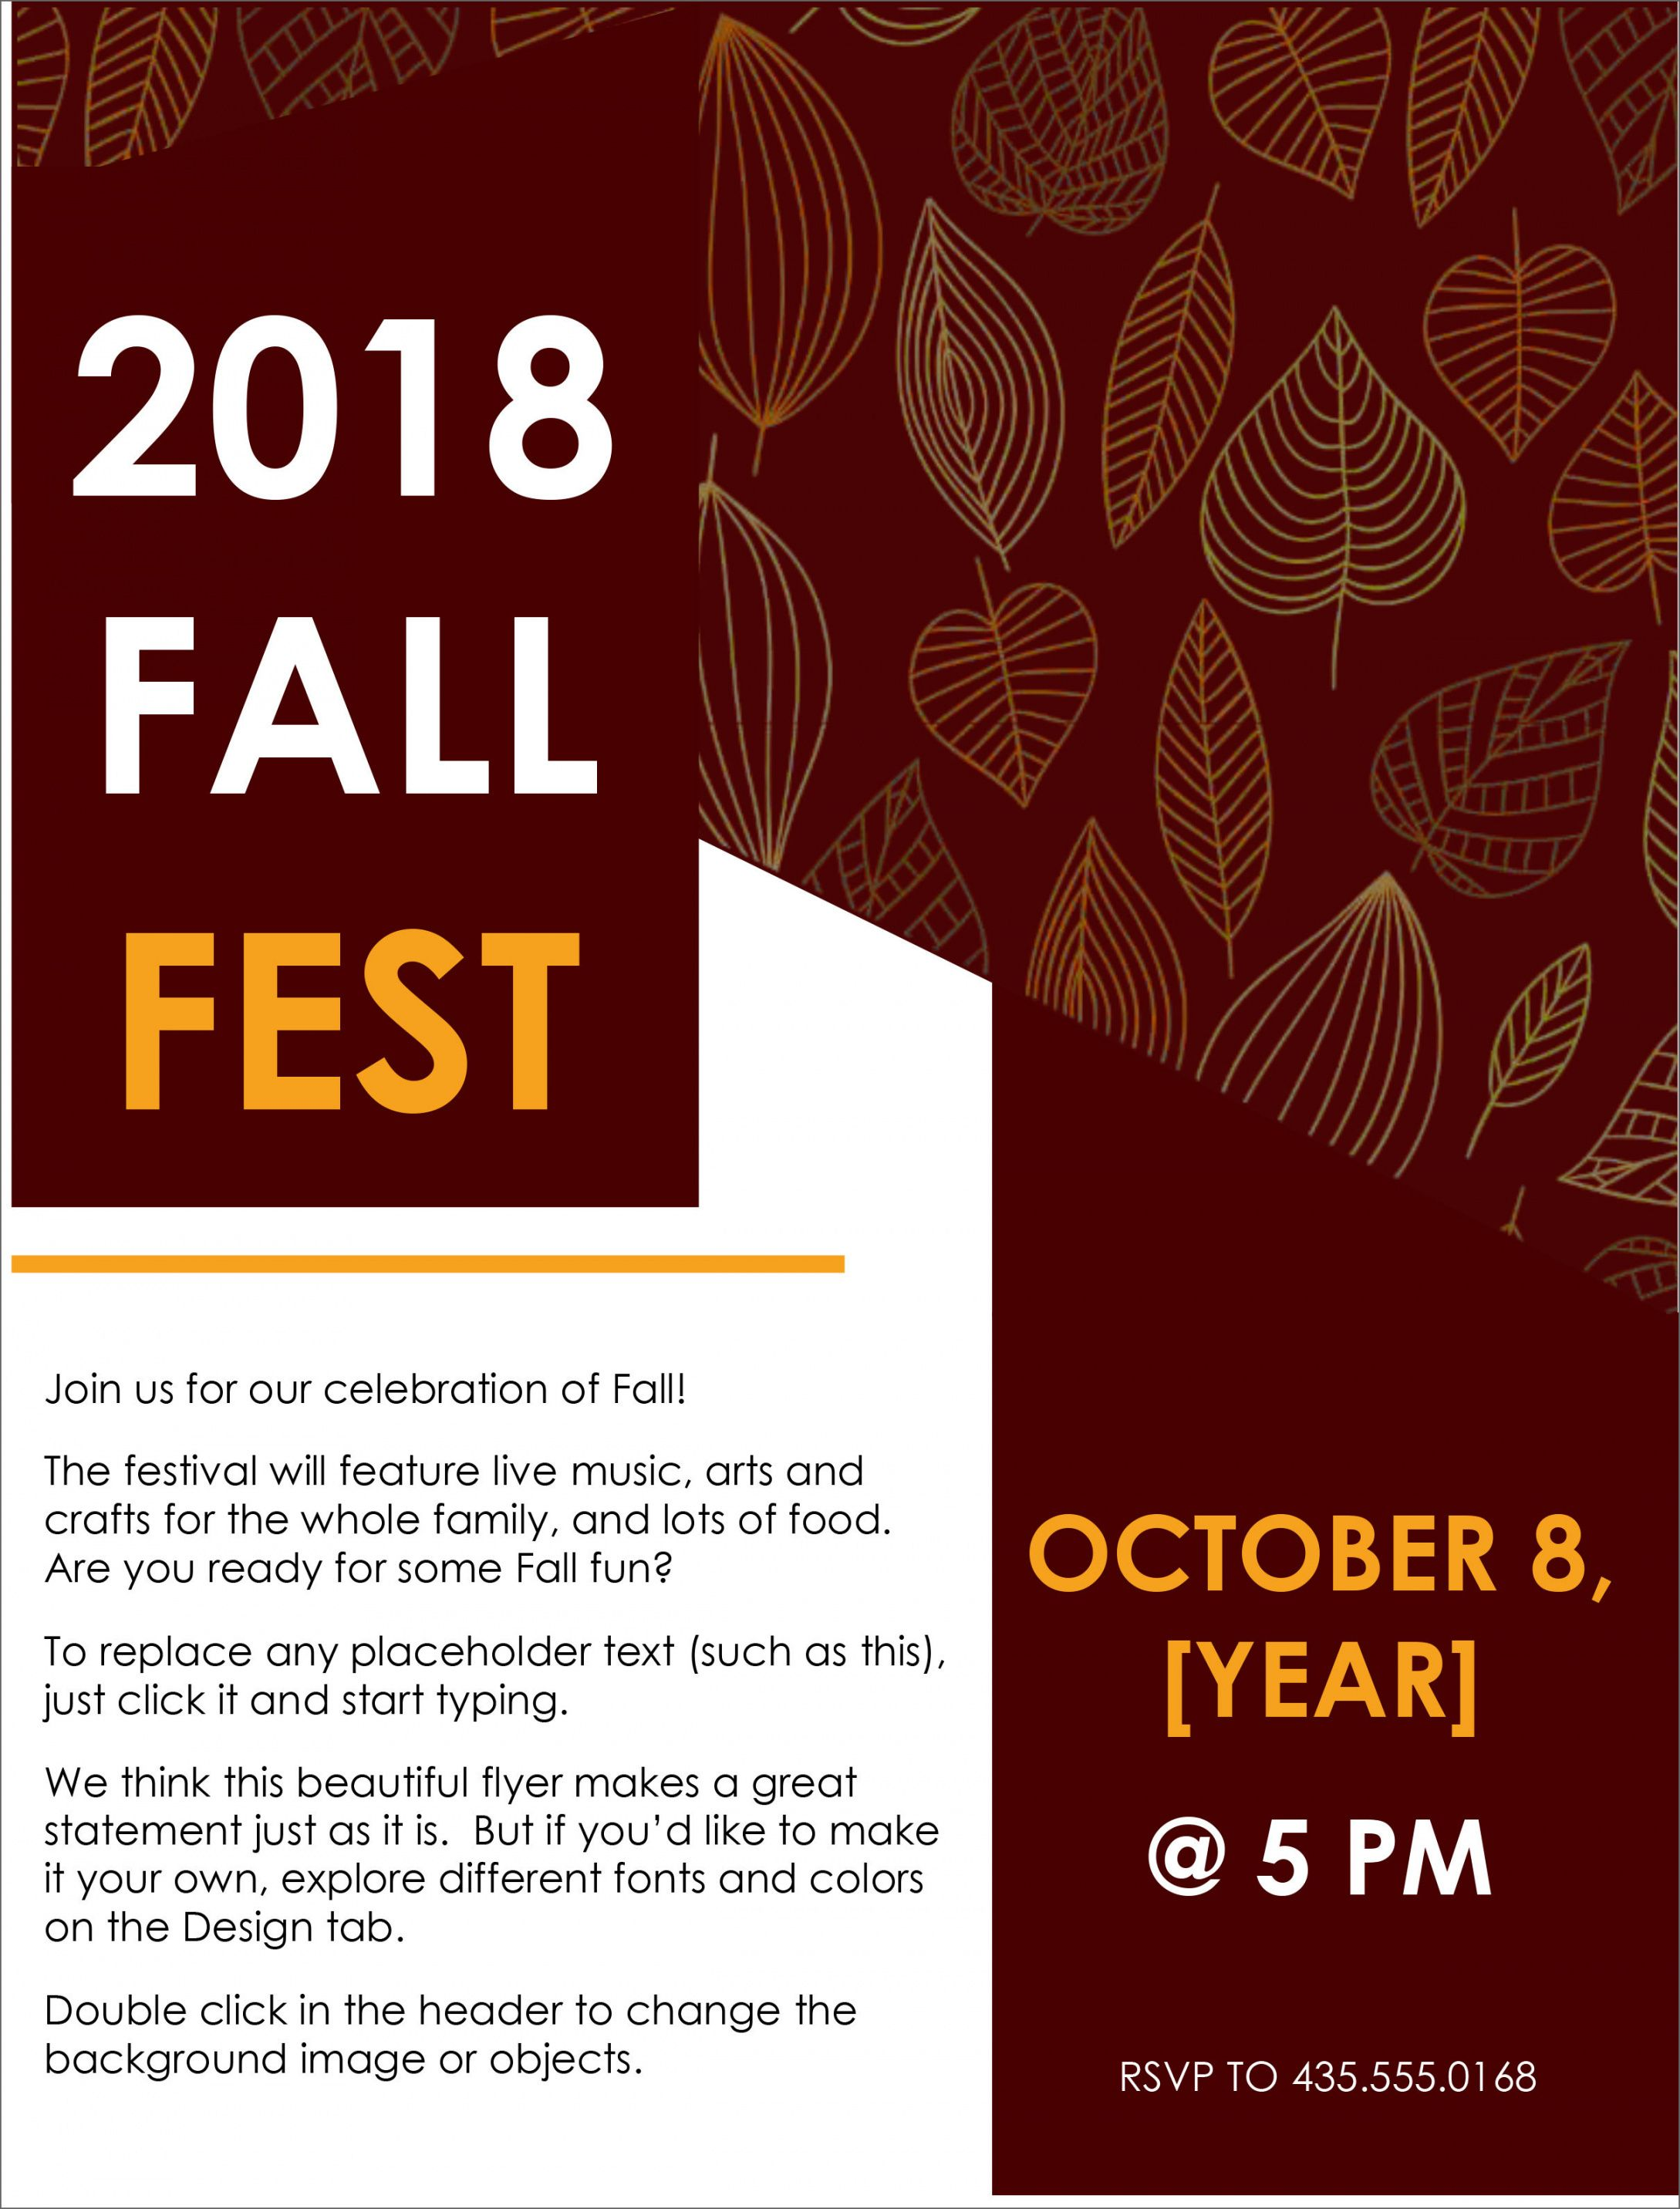 Get Our Example Of Fall Event Flyer Template For Free Free Flyer Templates Flyer Template Event Flyer Templates Fall clean up flyer template